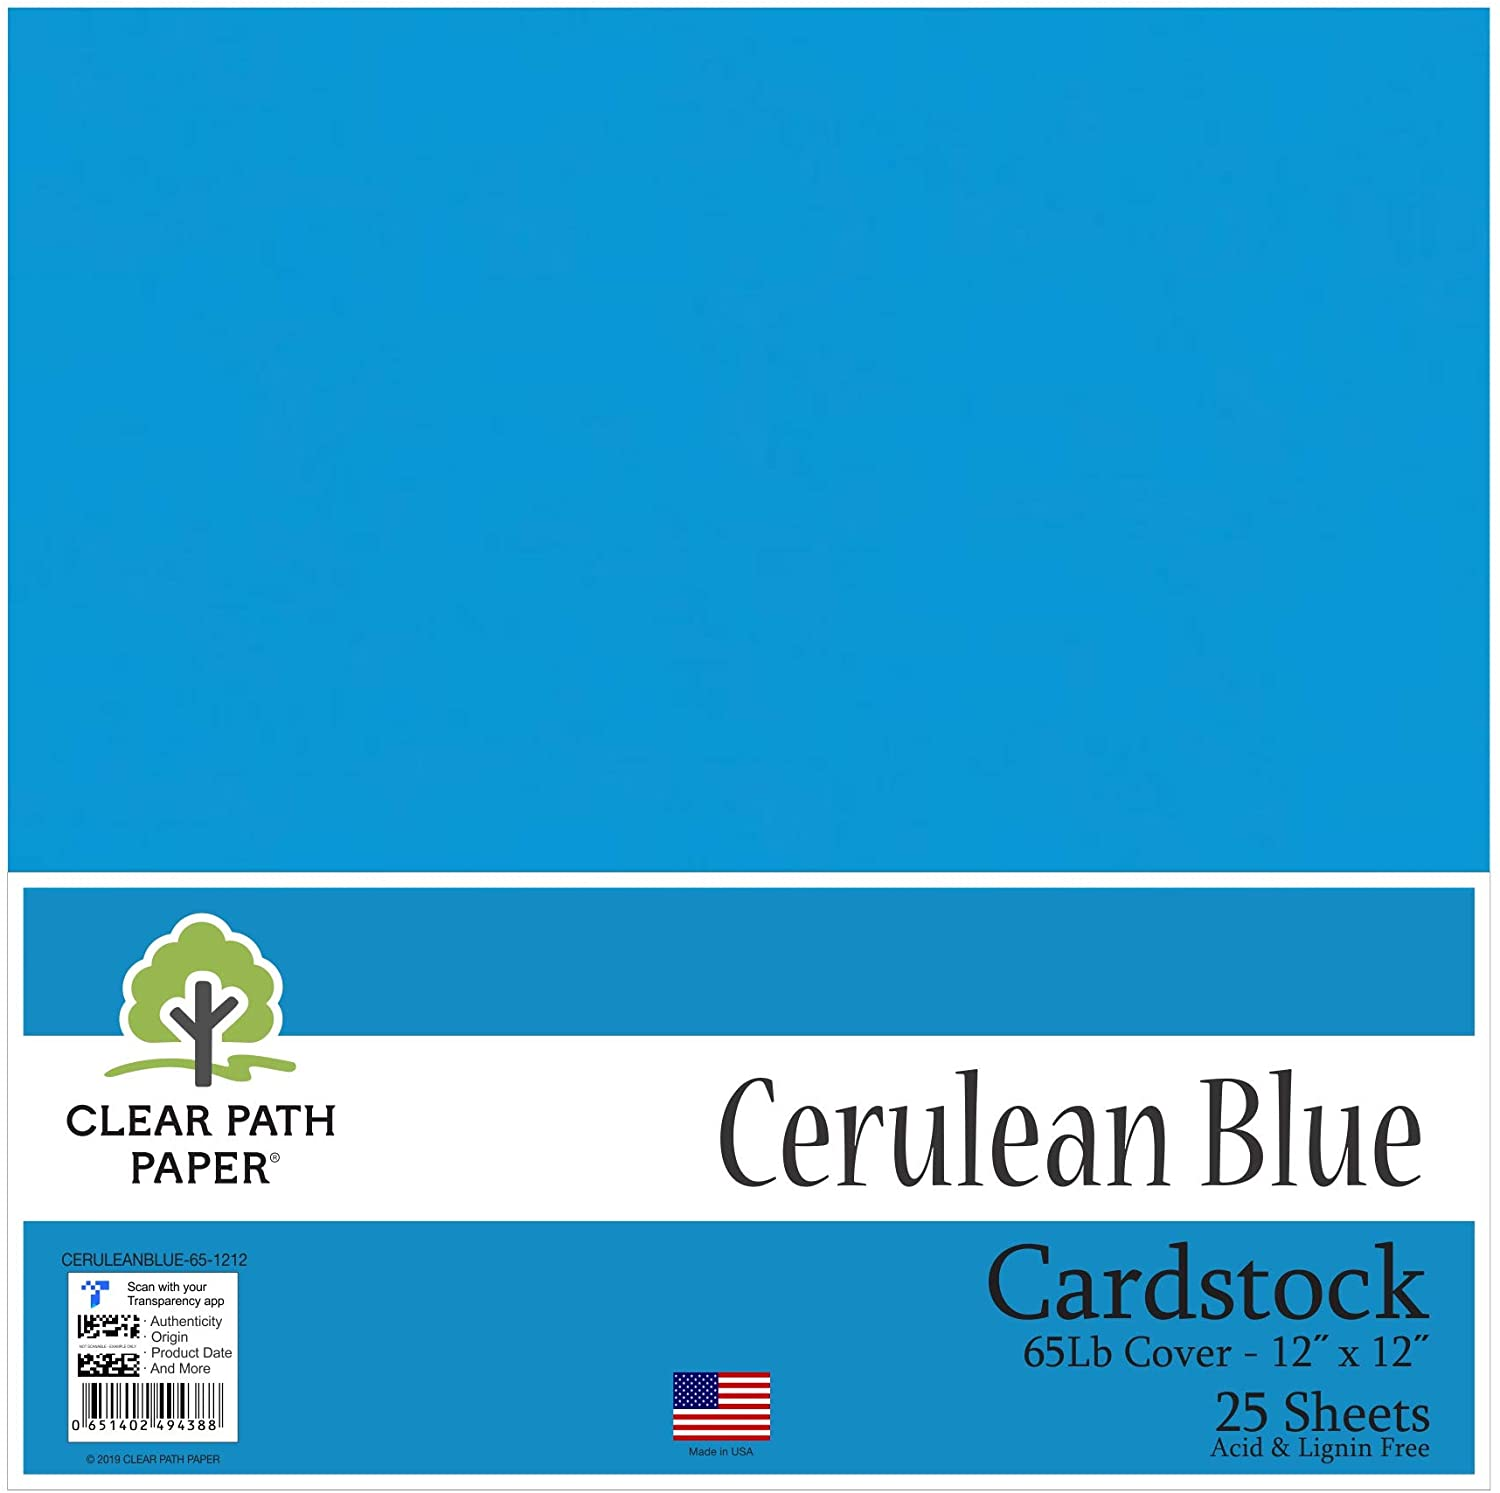 Cerulean Blue Cardstock - 12 x 12 inch - 65Lb Cover - 25 Sheets